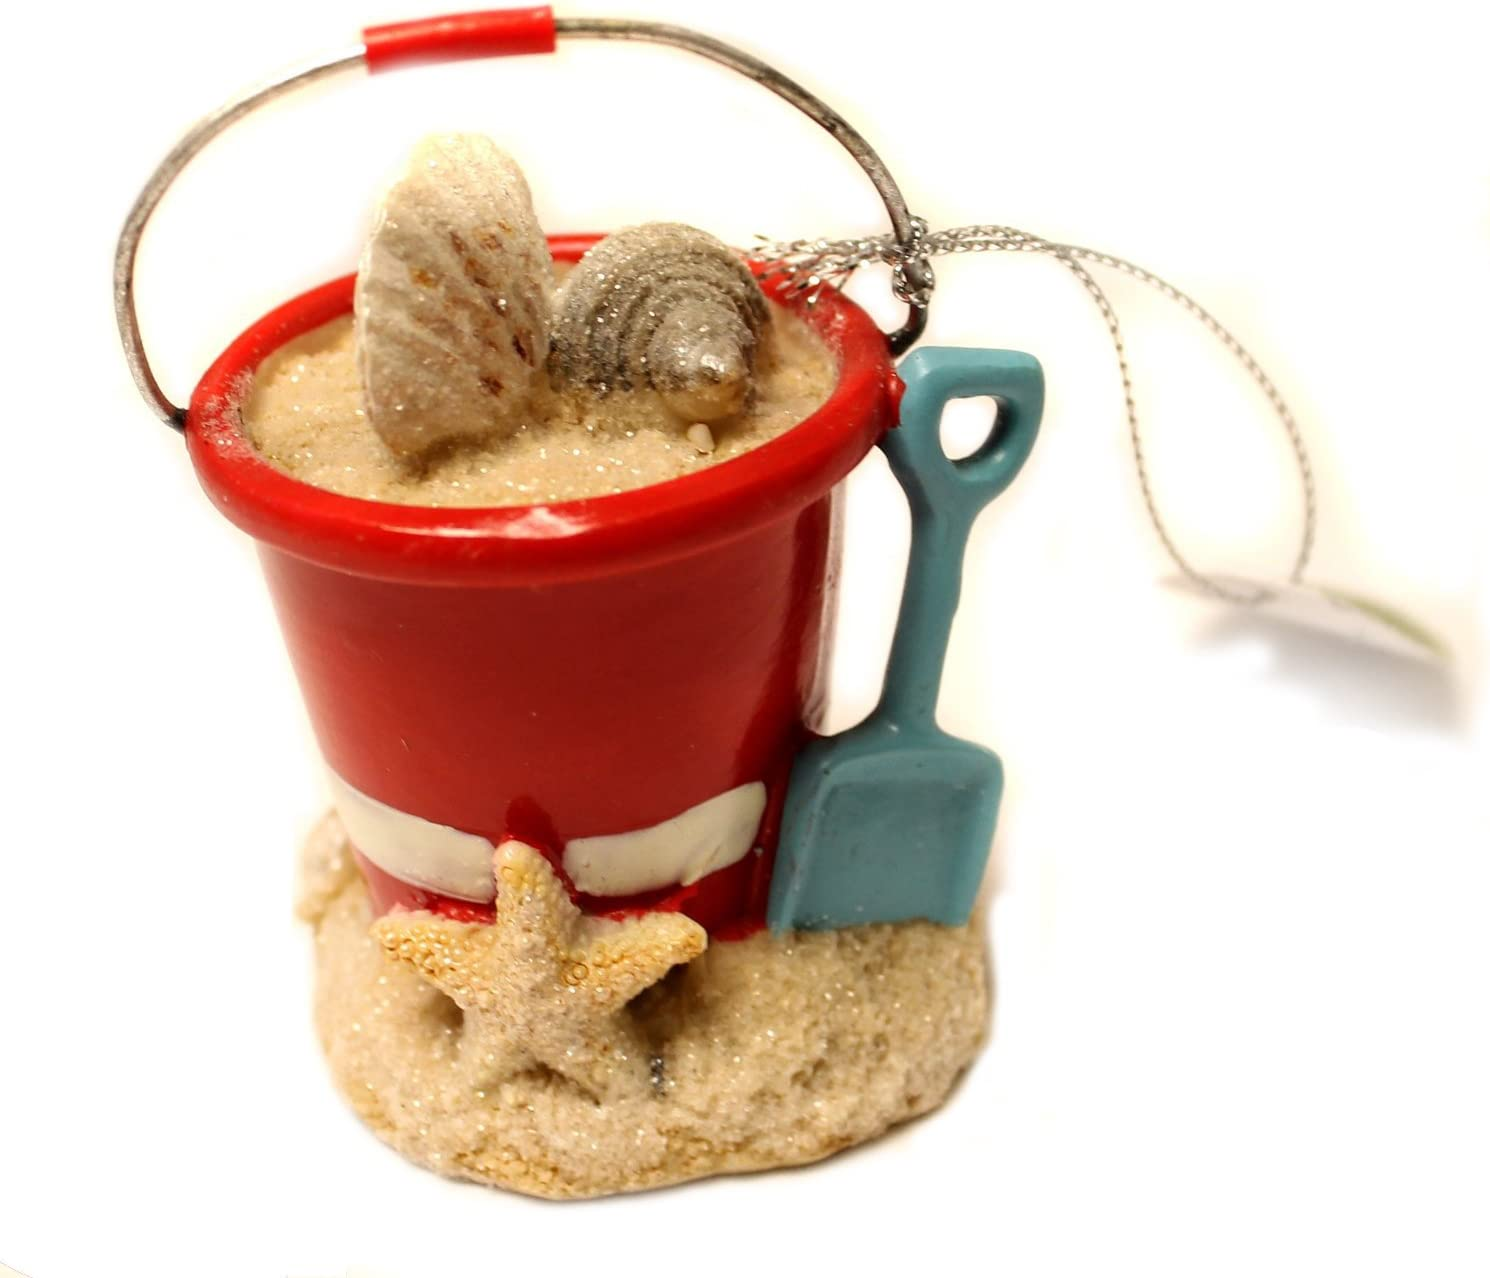 Midwest-CBK Christmas Decoration 3 Inch Beach Pail with Shells and Shovel Christmas Ornament